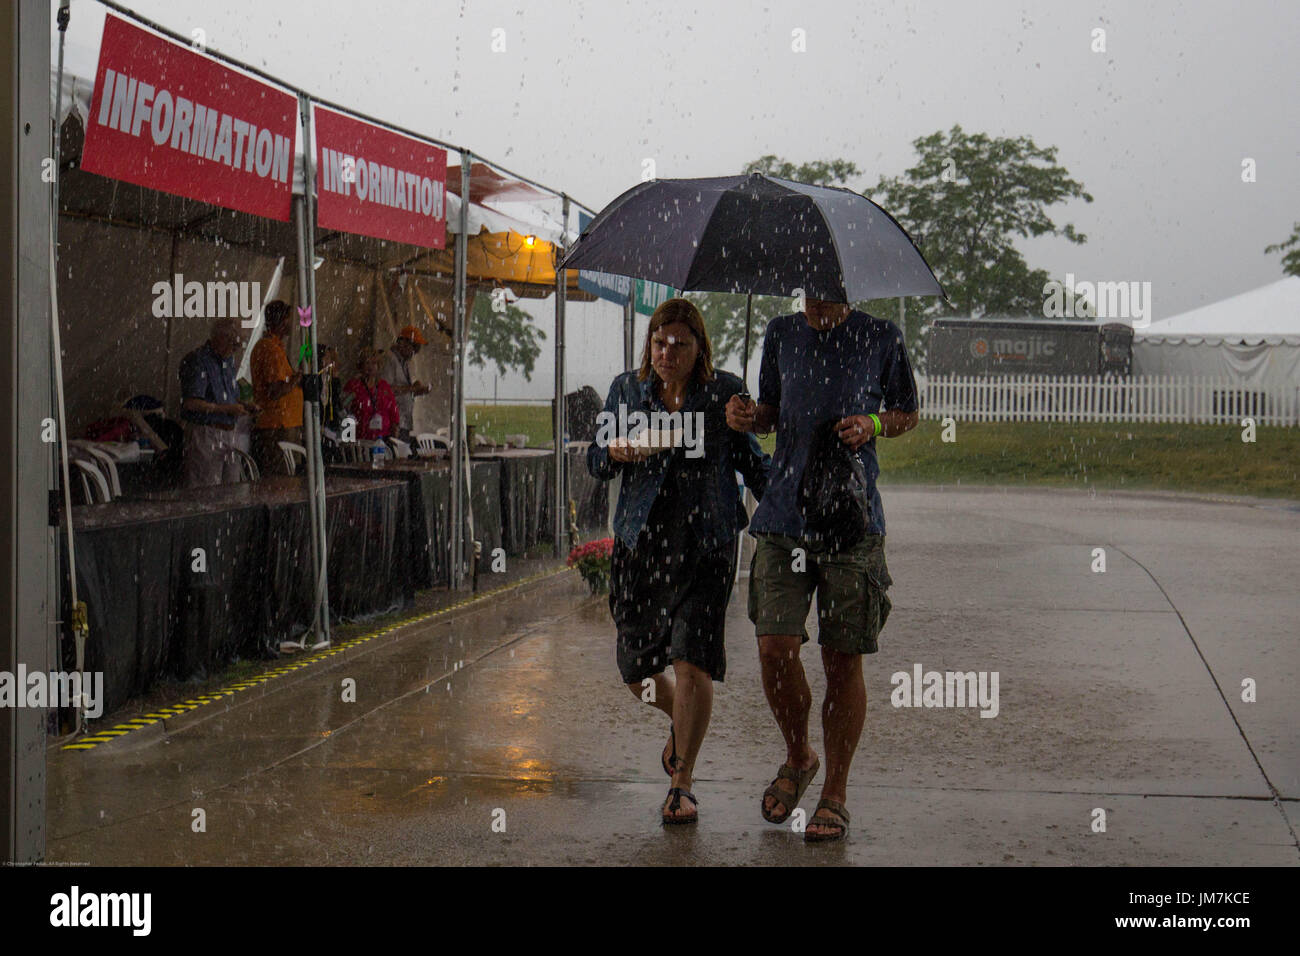 Under an umbrella - Stock Image